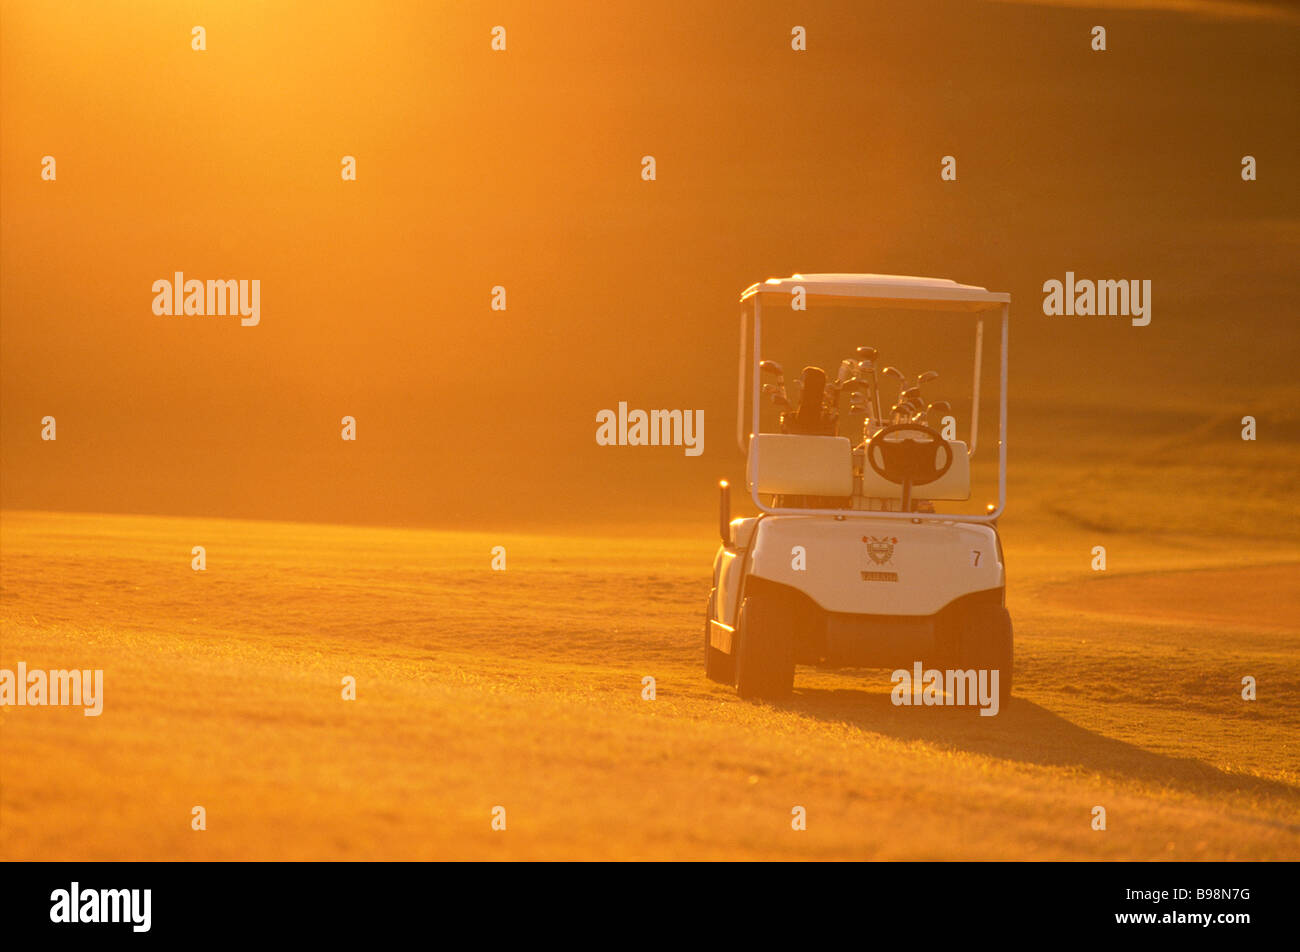 Golf buggy in sunrise - Stock Image